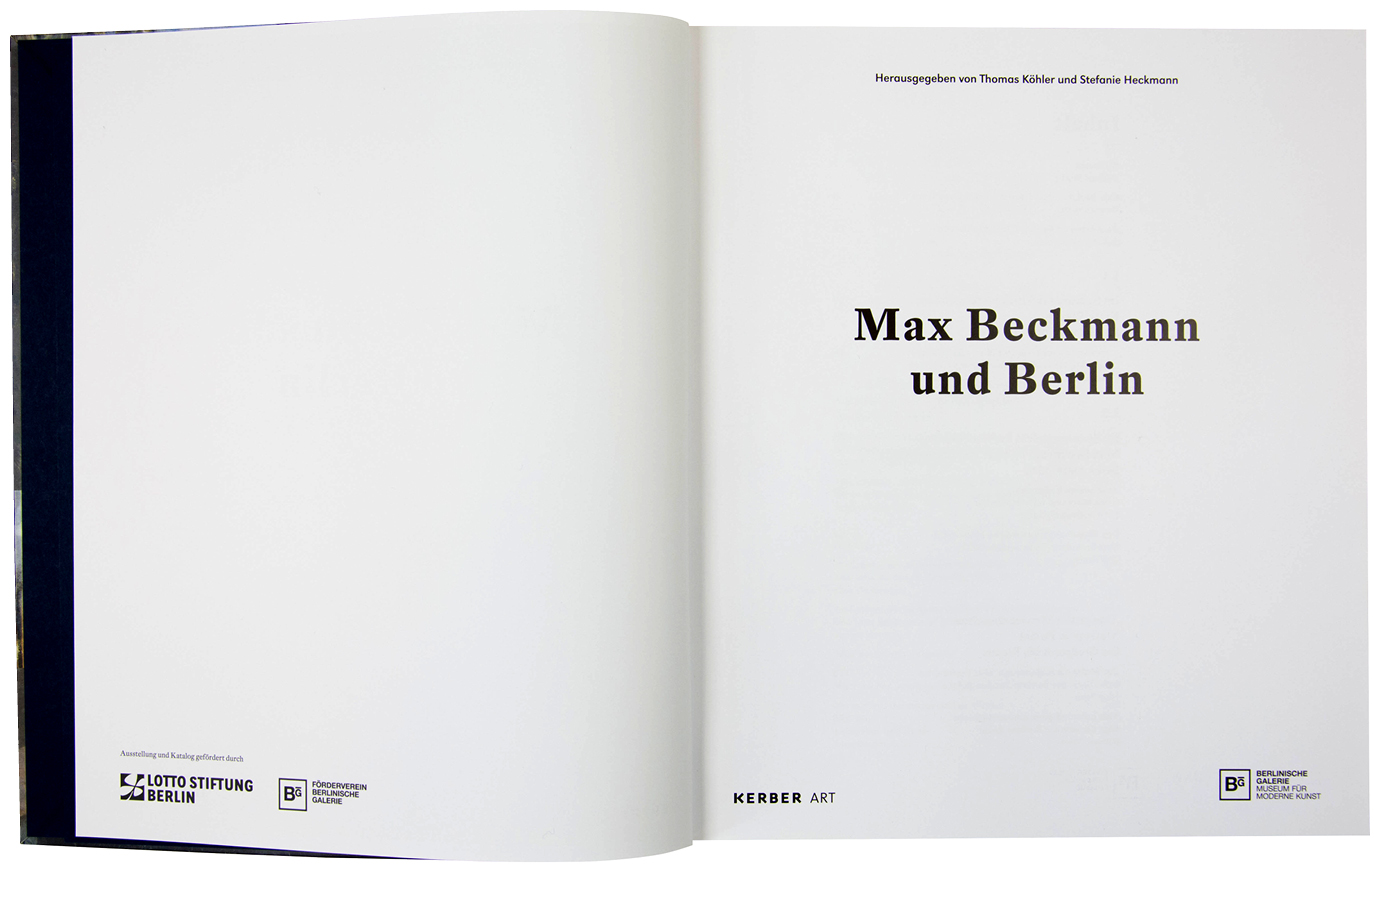 http://e-o-t.de/wordpress/wp-content/uploads/2017/07/2015_eot-Beckmann-Book-3.jpg